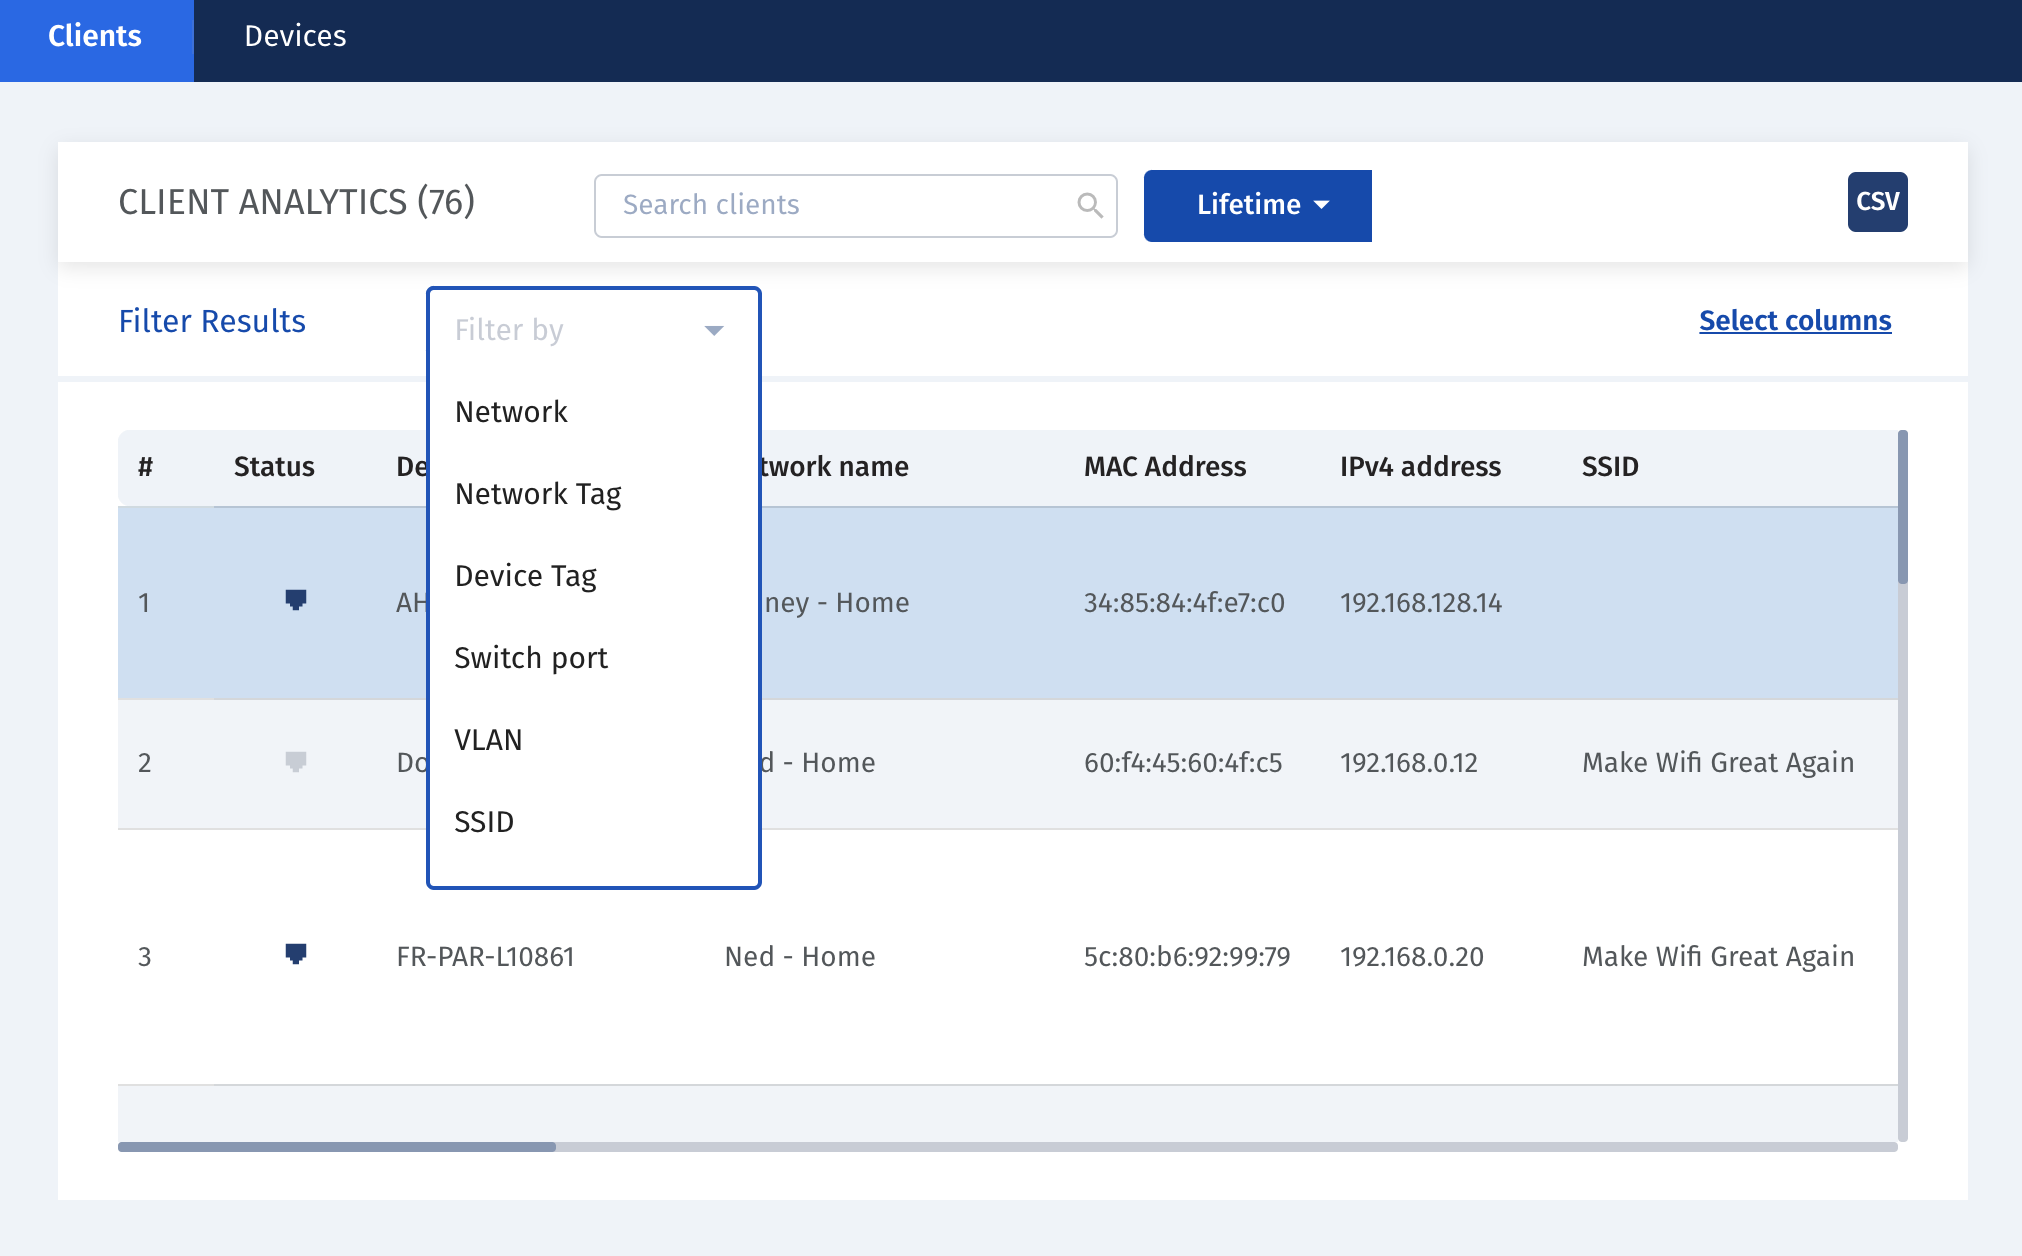 Improve device discovery and inventory. Aggregate all client and device information from an organization within one single dashboard and speed up research thanks to more advanced filtering tools.